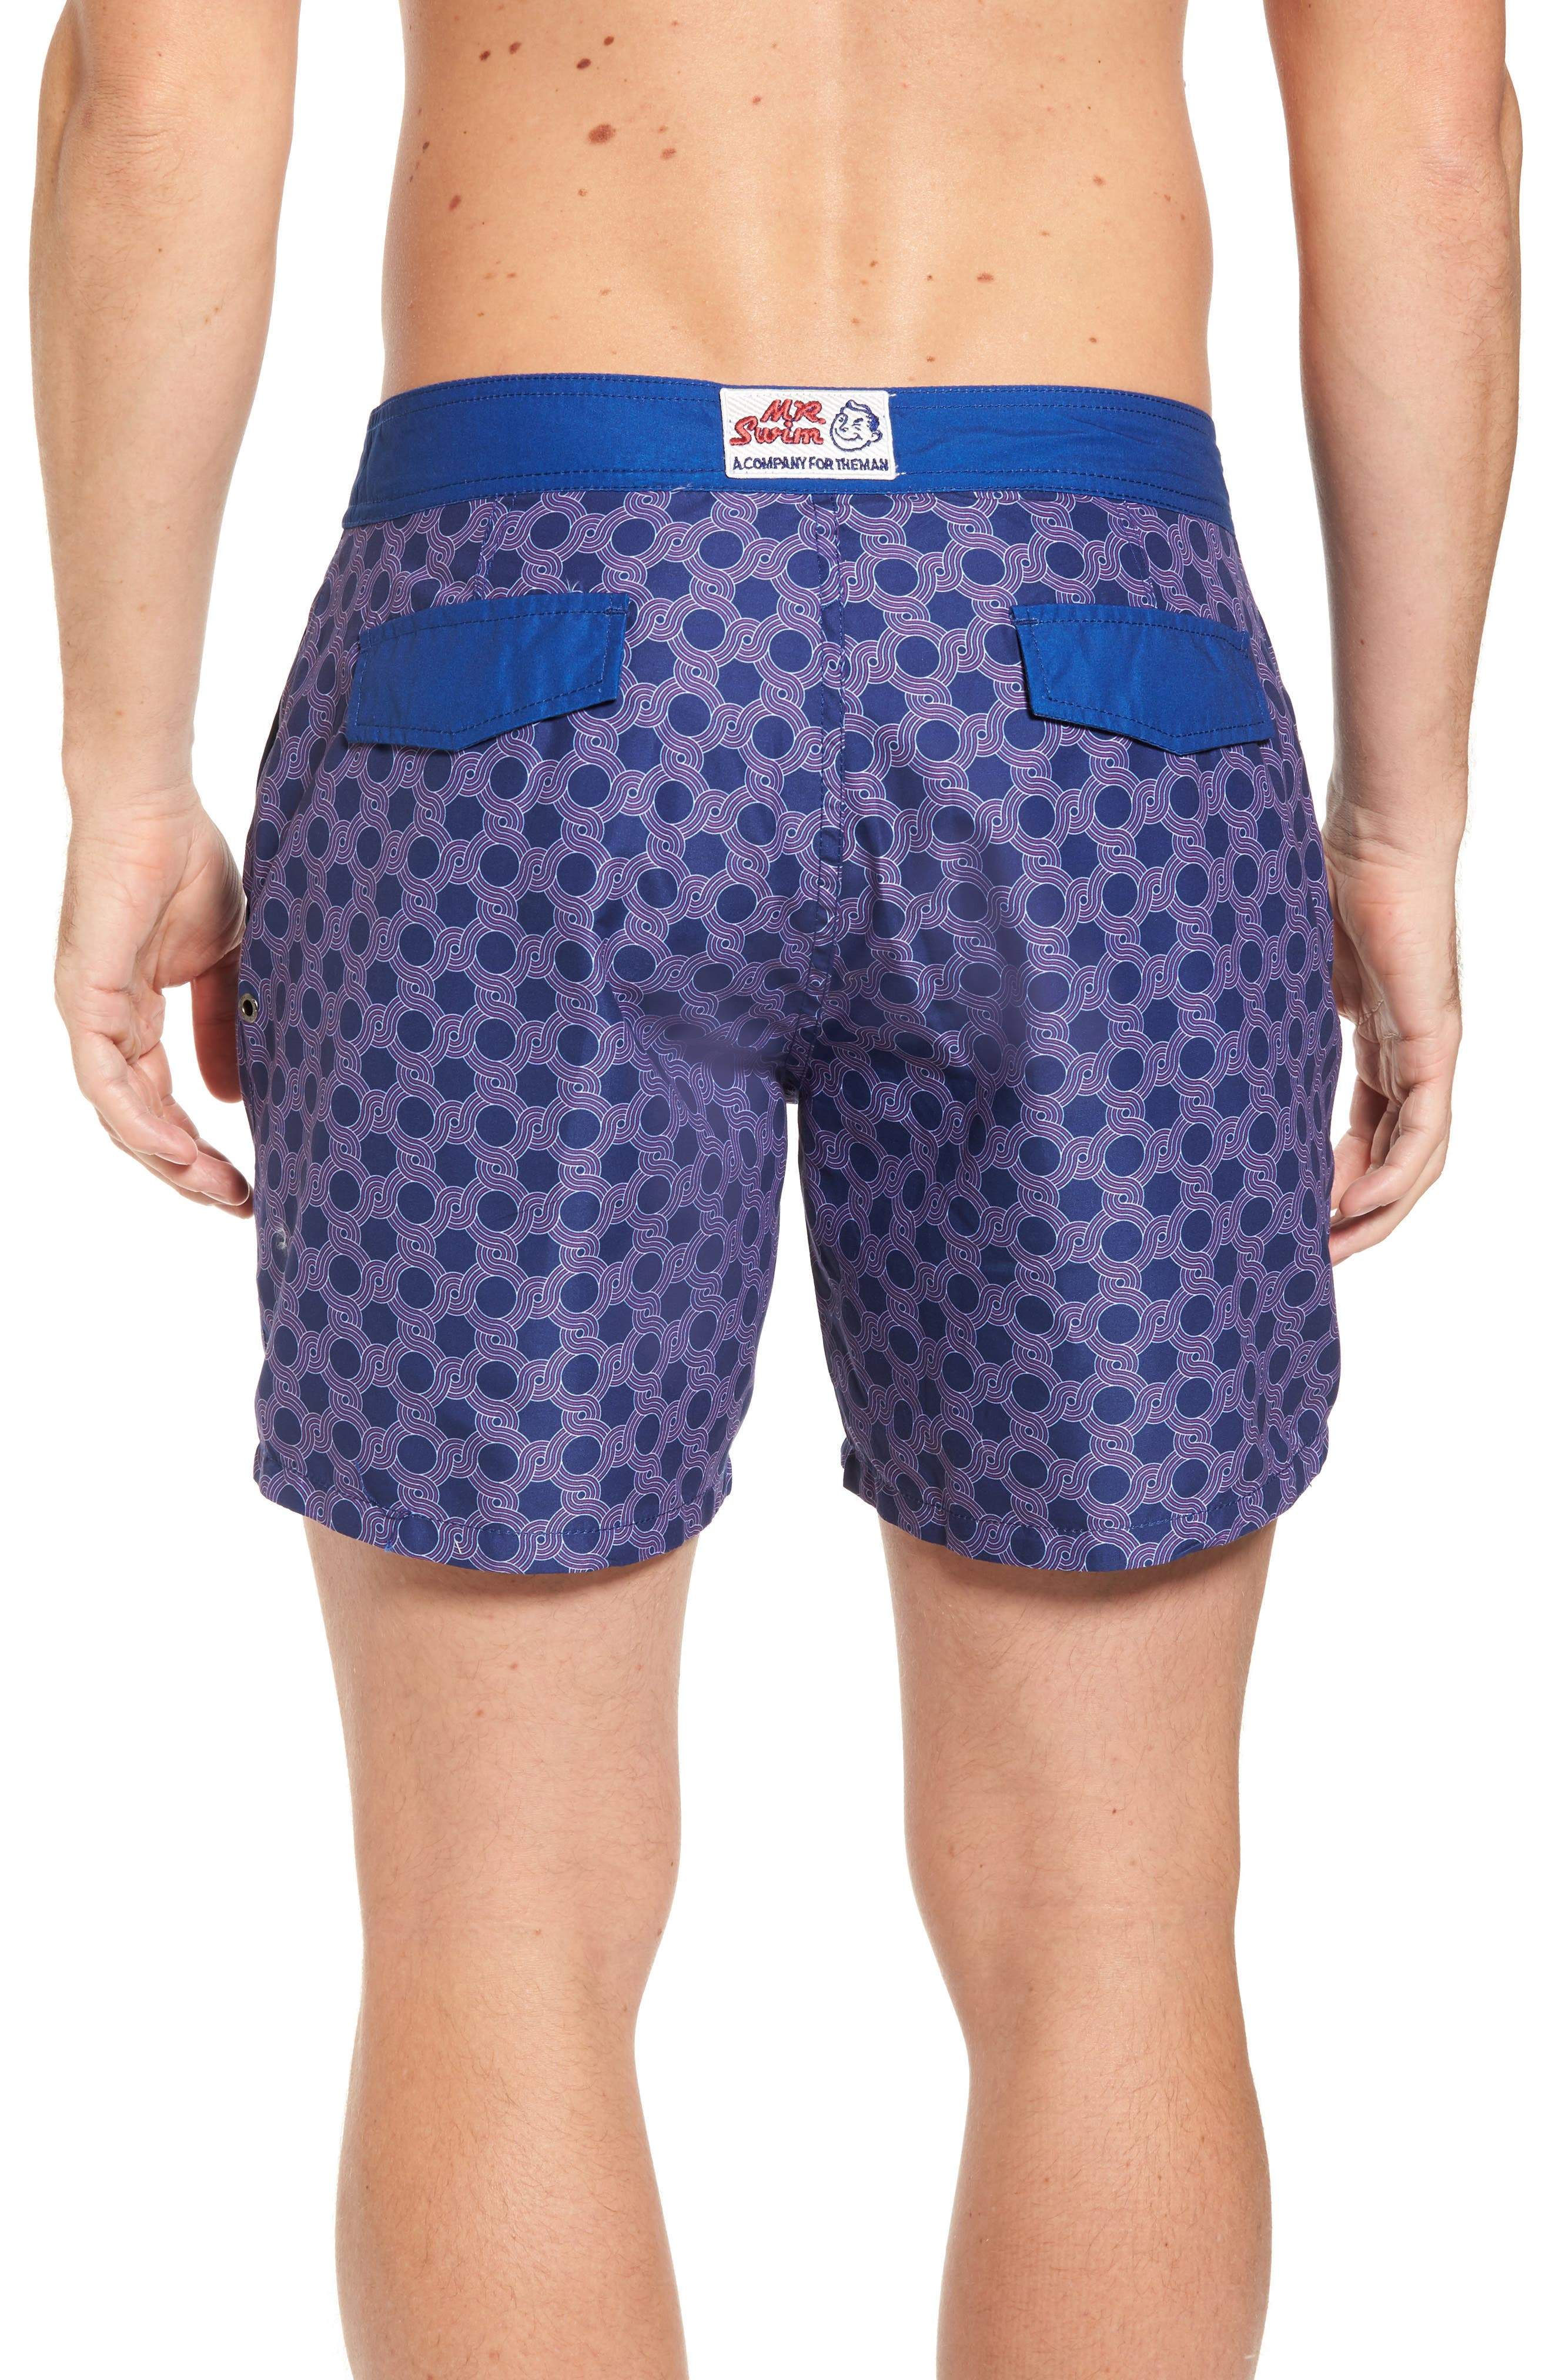 Mr. Swim Figure Eight Print Swim Trunks,                             Alternate thumbnail 2, color,                             NAVY